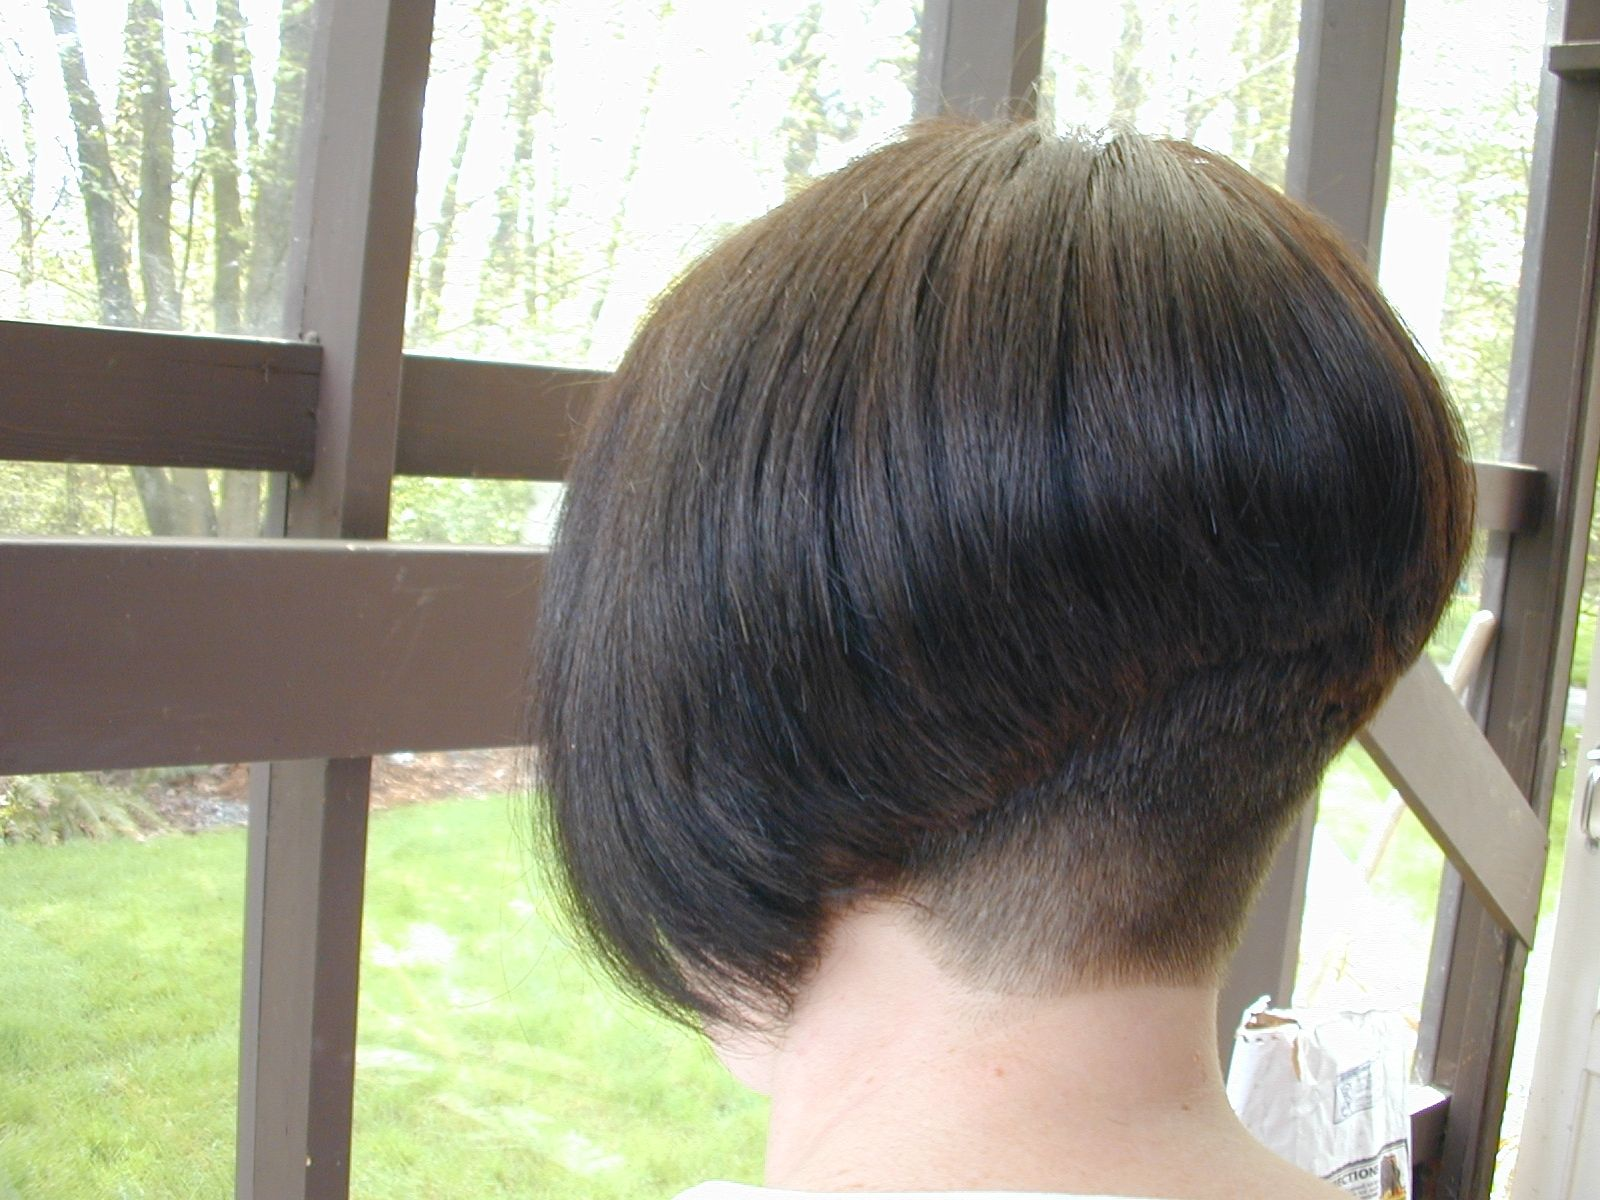 496 best extreme bob haircut images on pinterest | short bobs